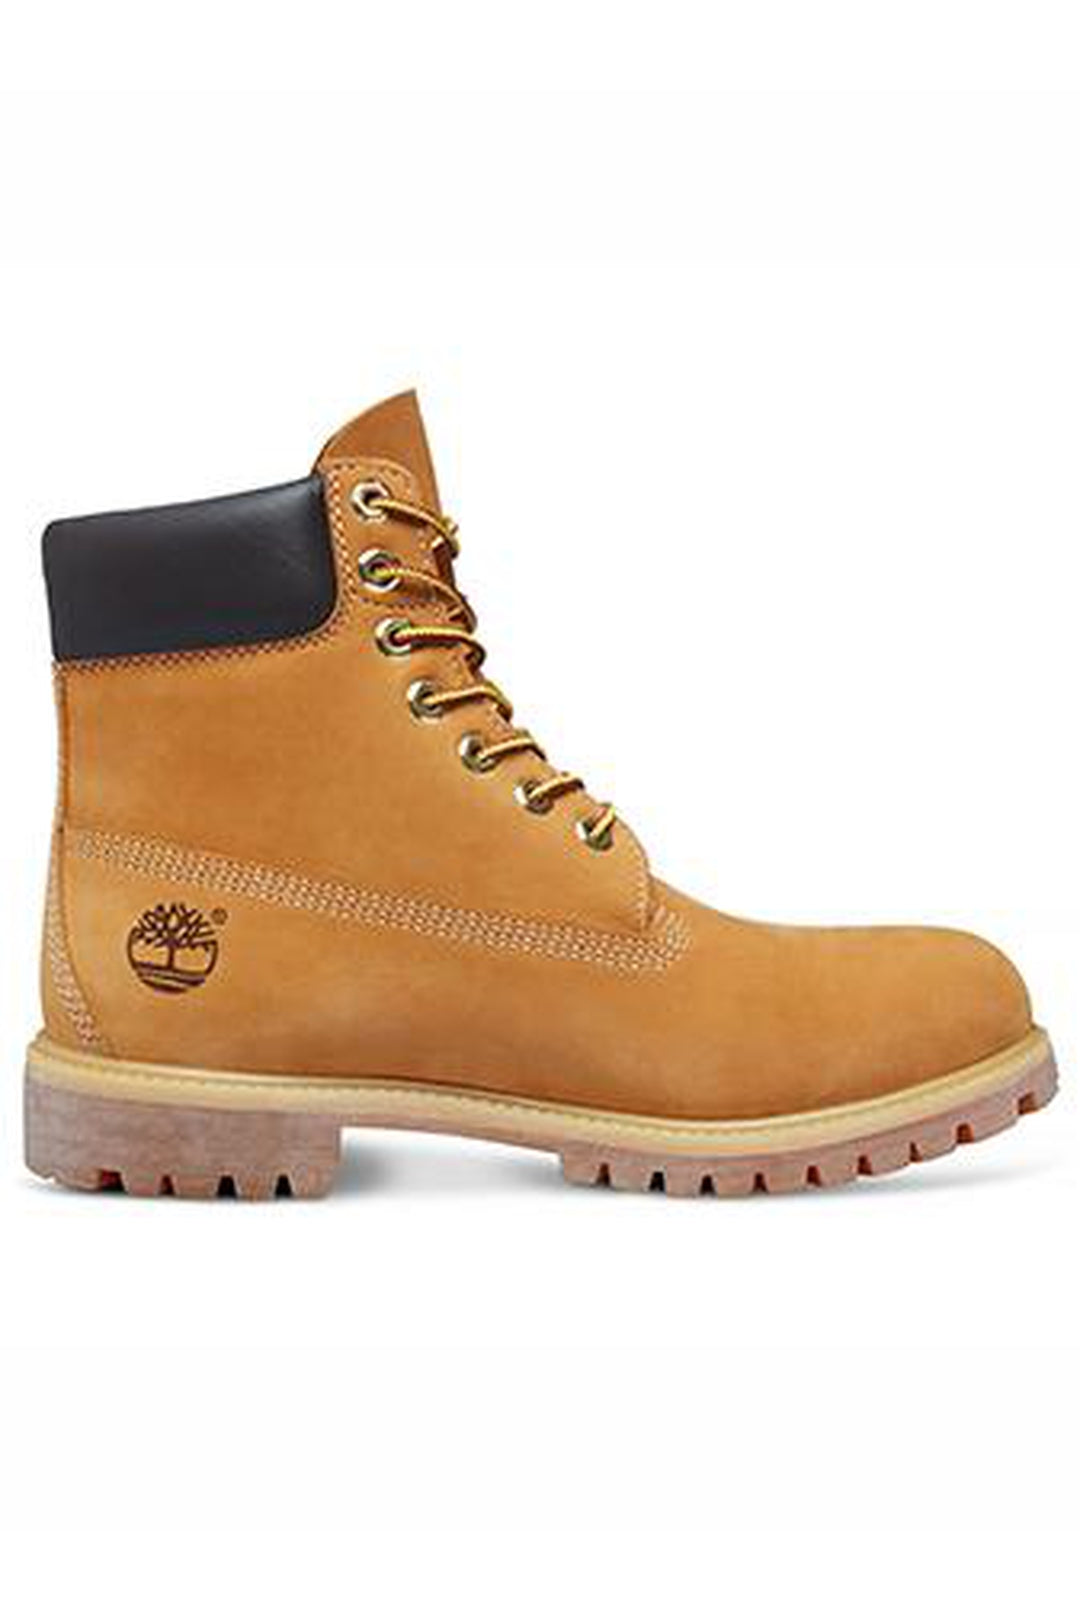 sports shoes d3470 a0153 TIMBERLAND Premium wheat nubuck